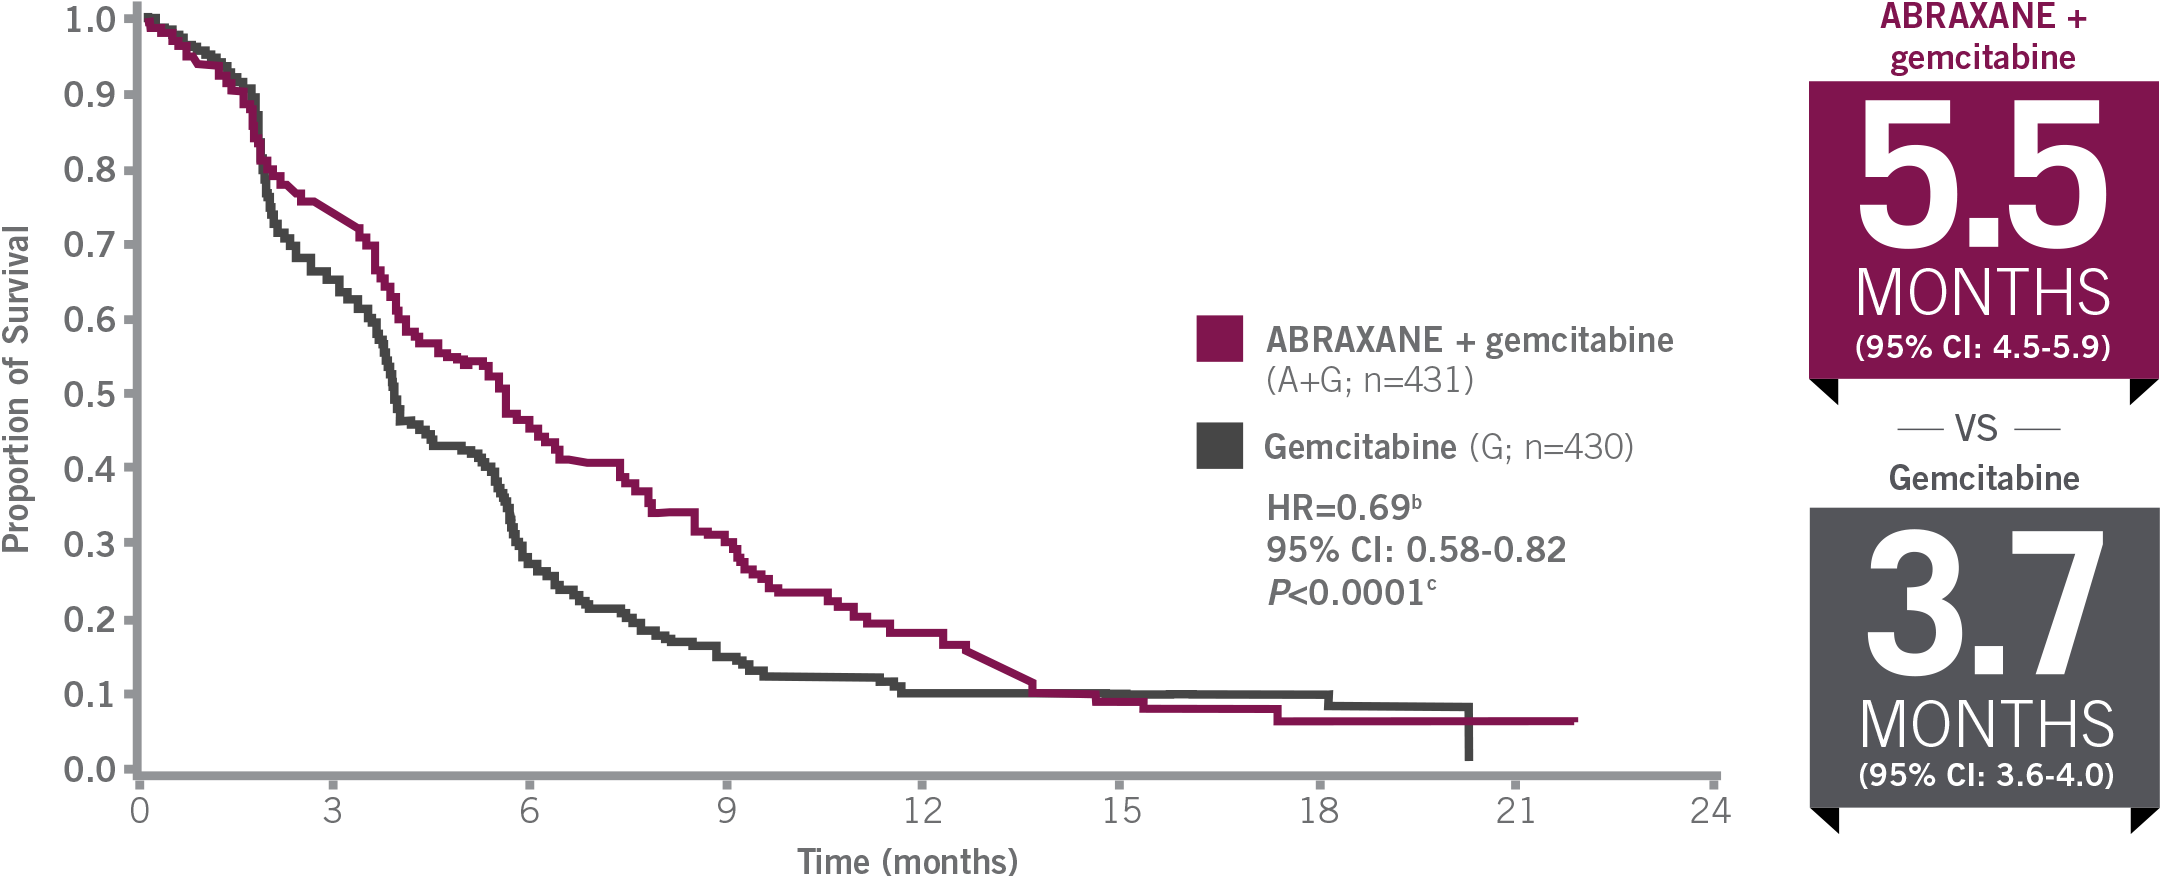 Progression-free survival: ABRAXANE + gemcitabine vs gemcitabine